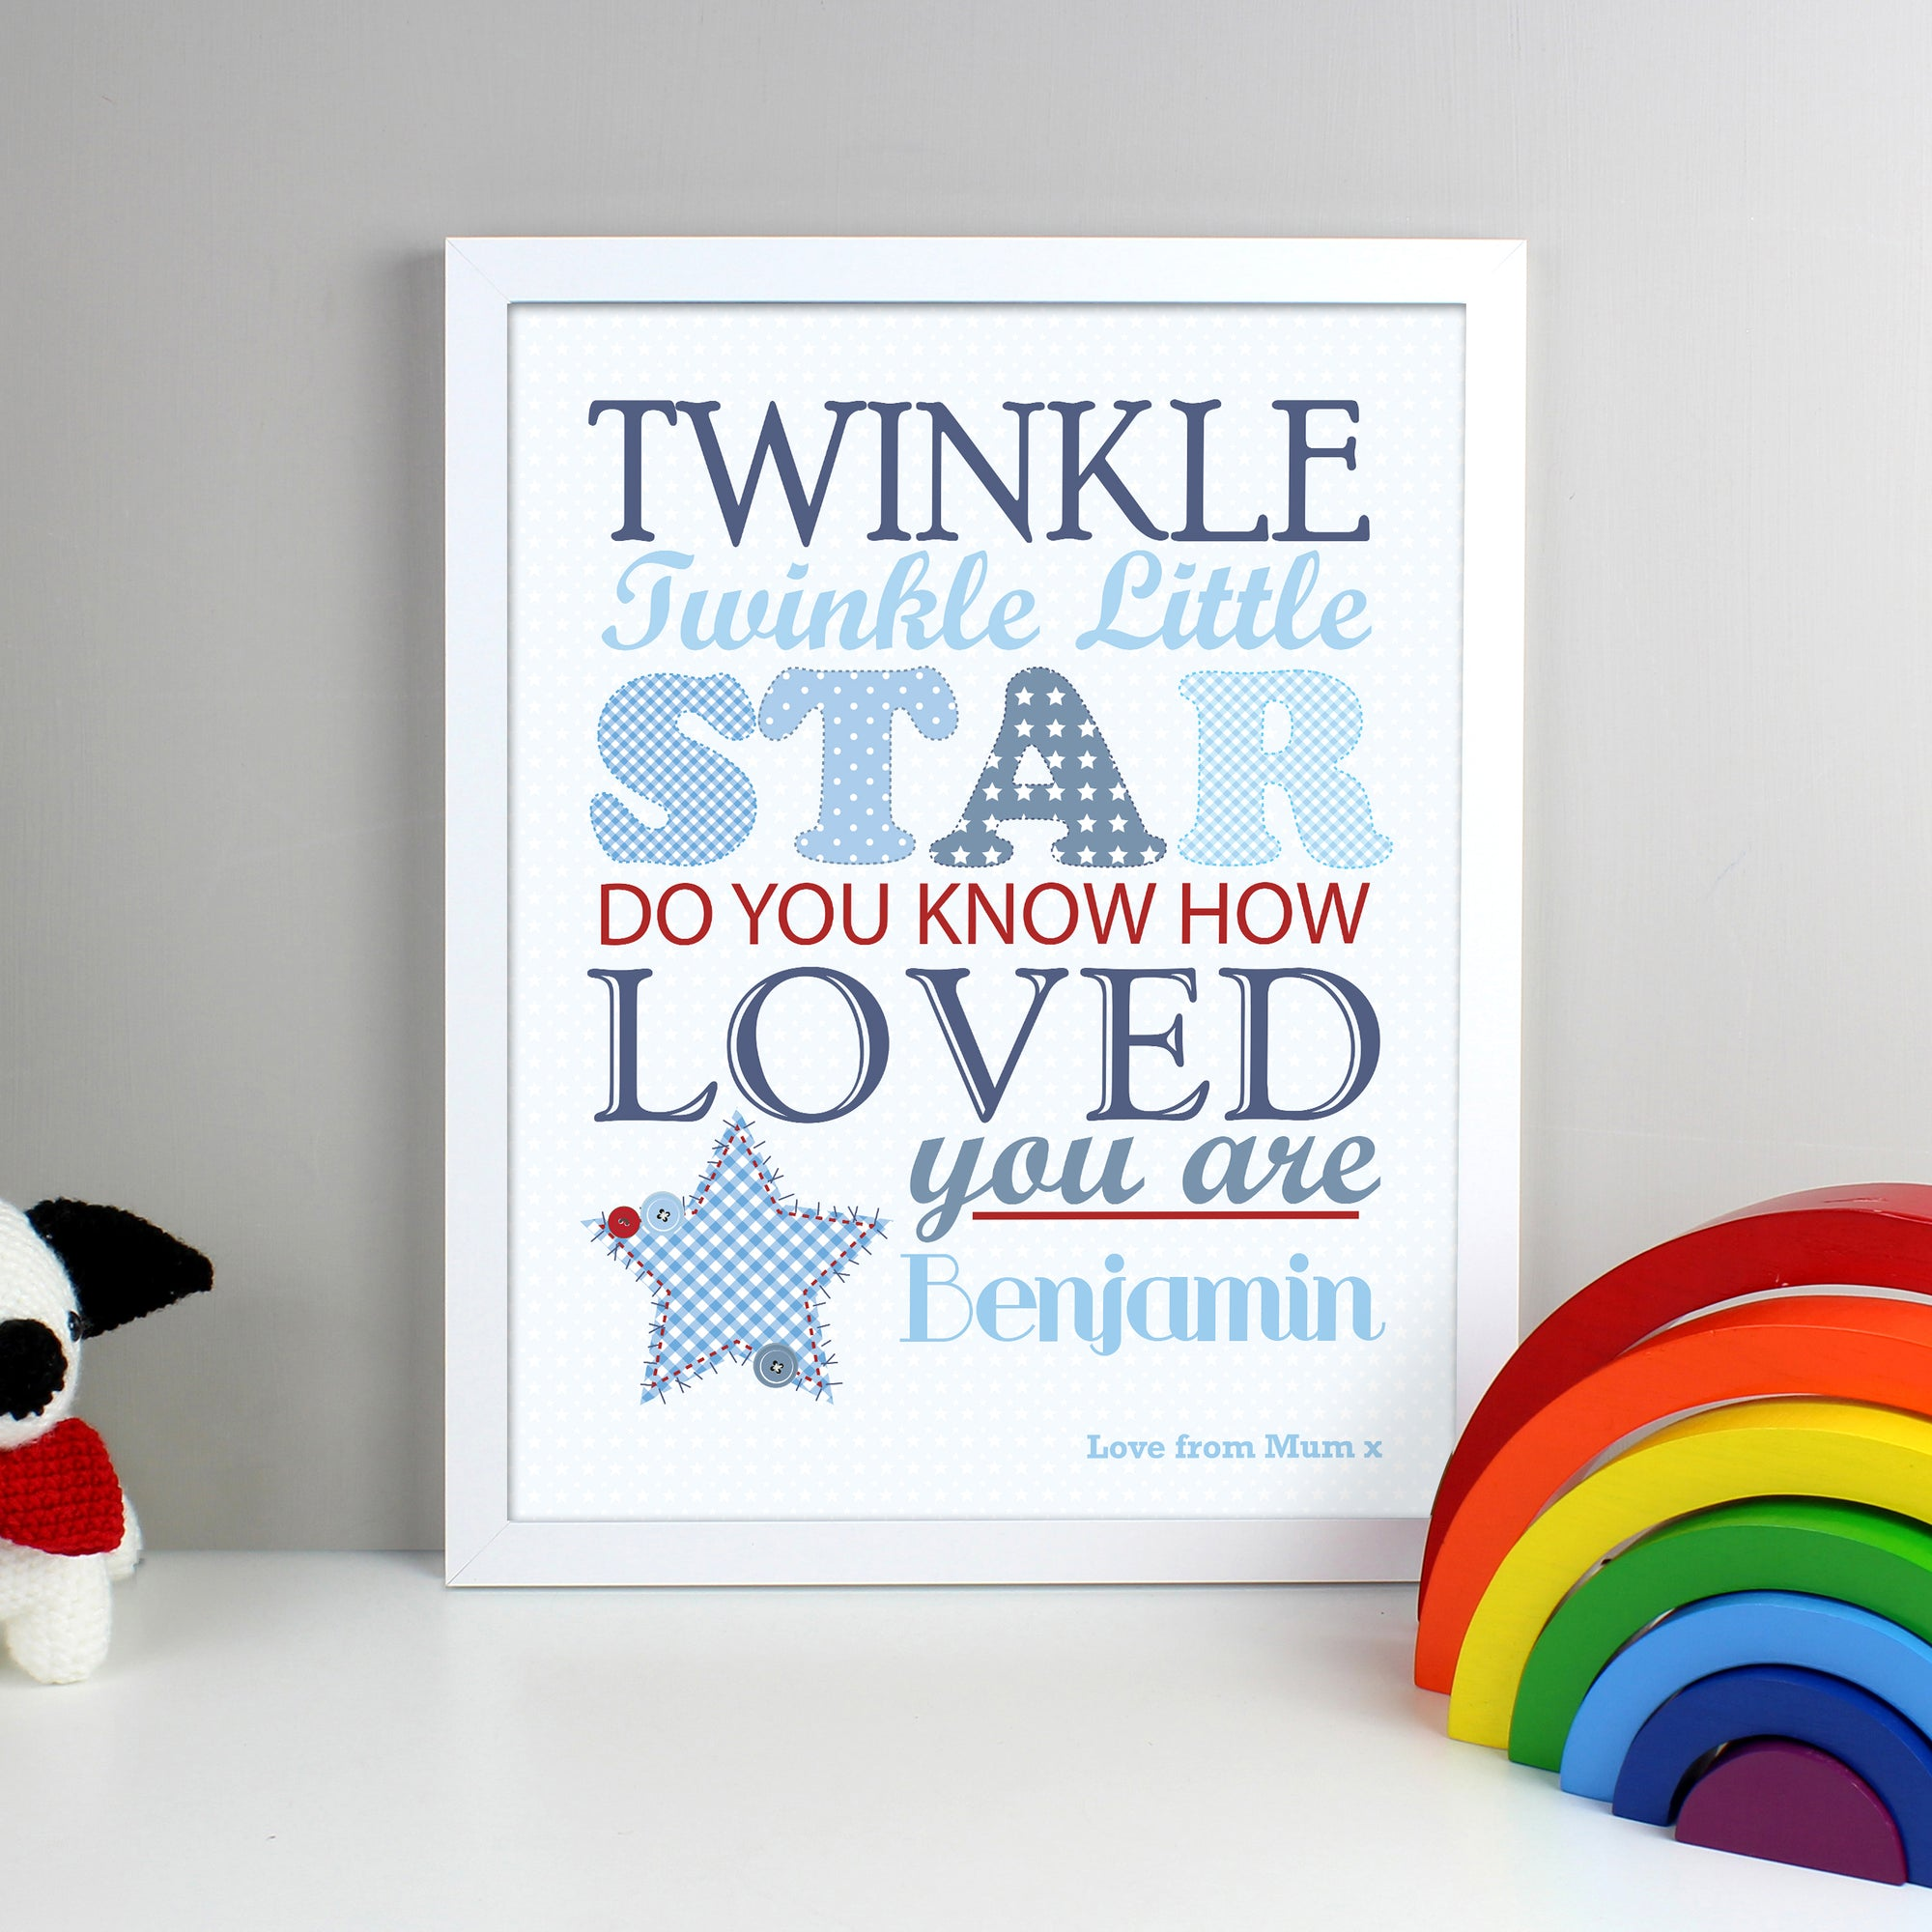 Personalised framed print with the wording 'Twinkle twinkle little star do you know how loved you are' printed in different sizes and fonts in blue and red on a white background. The print can then be personalised with a name and a special message of your own or birth details. The print comes in a white frame.